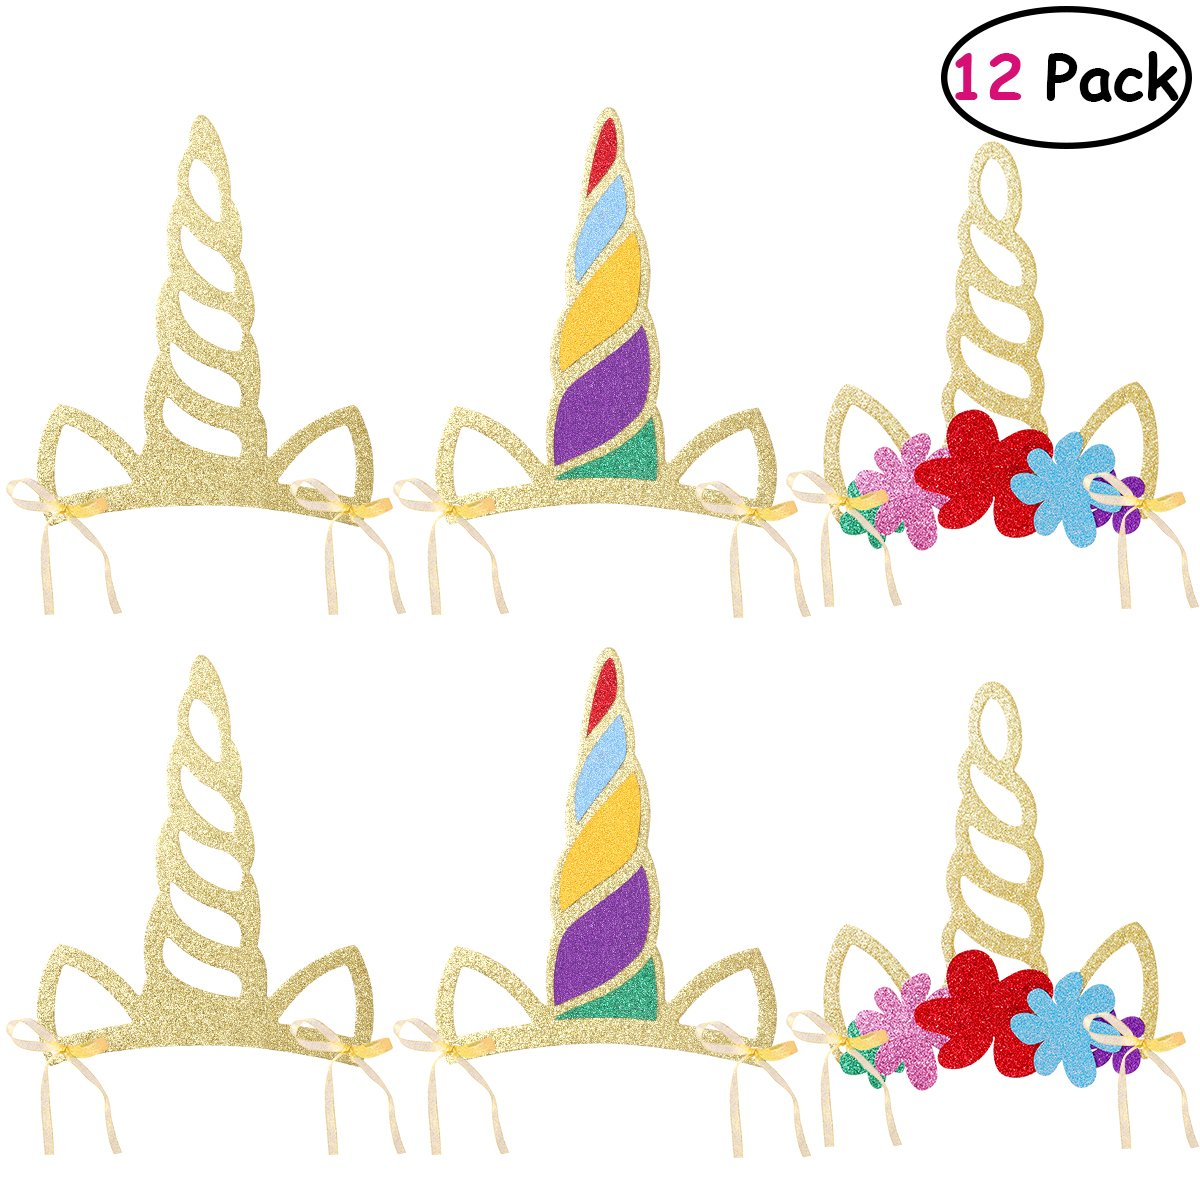 Amazon.com  OULII Unicorn Horn Hats Headband Glitter Party Hats Crown Unicorn  Theme Party Supplies for Kids Baby Shower Birthday Photo Props 12PCS  Toys    ... 91d1dd4f9300